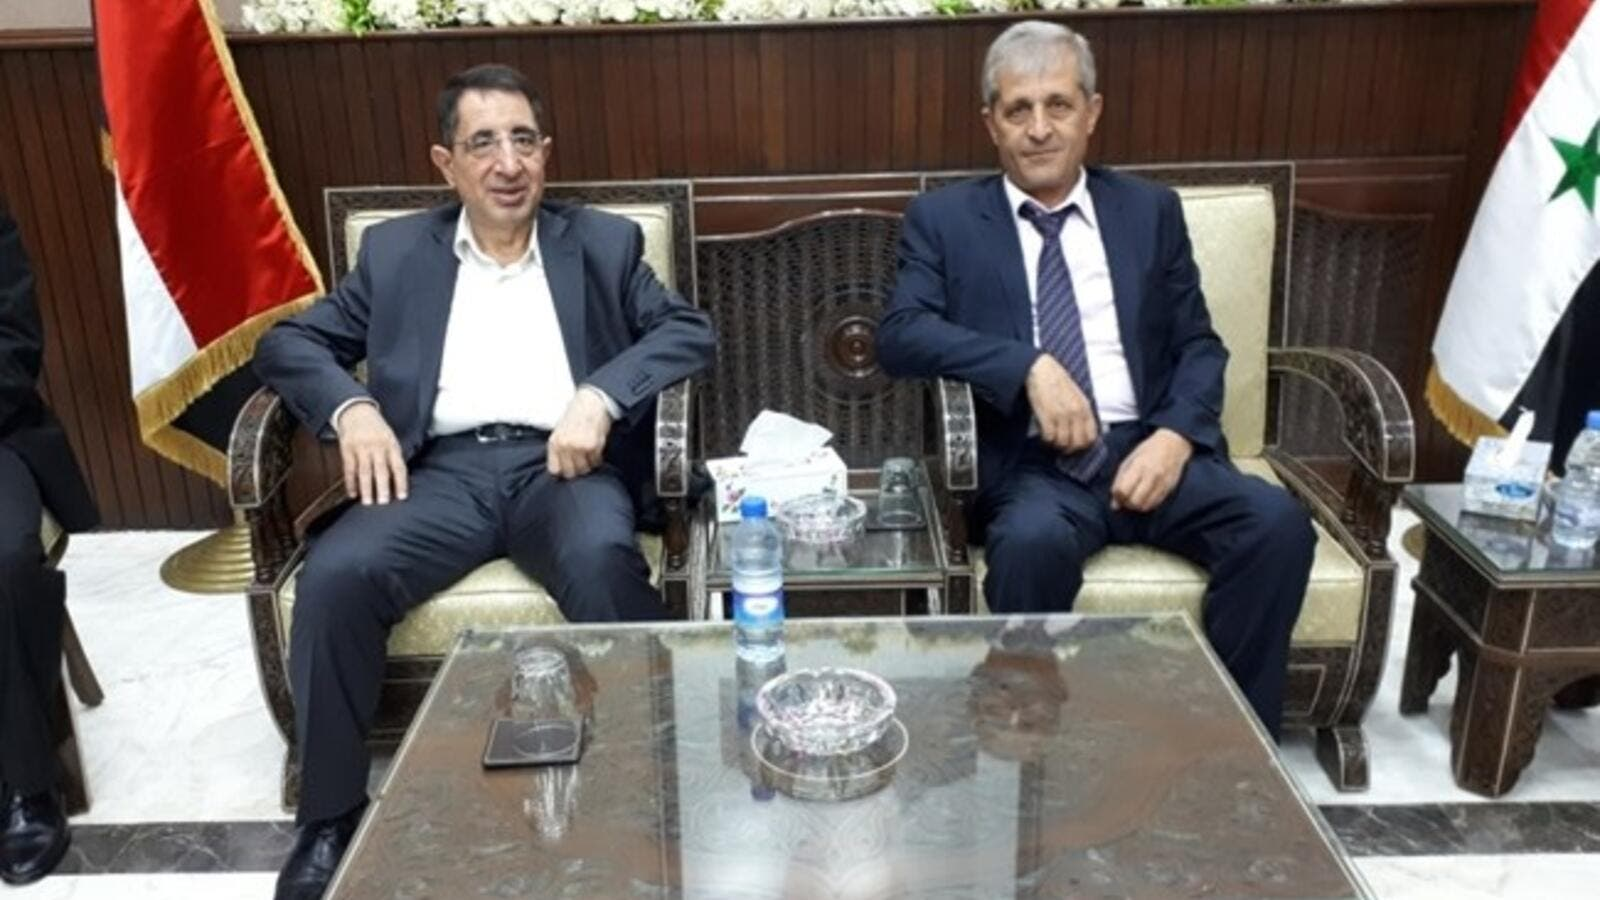 Hezbollah MP and caretaker Industry Minister Hussein Hajj Hasan (L) meets with the Syrian economy and trade minister in Syria on Sept. 6, 2018 (The Daily Star)